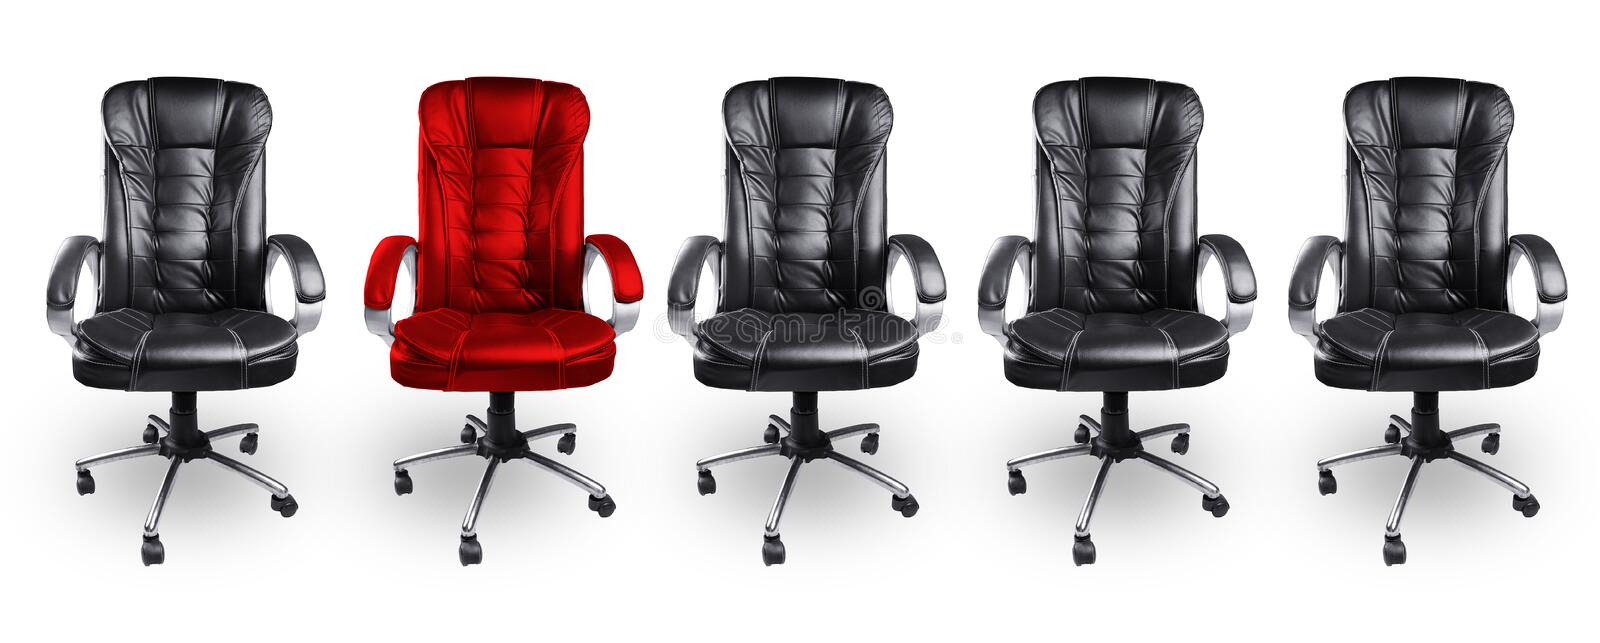 Office Chairs in Black and Red, Stand out Concept royalty free stock images